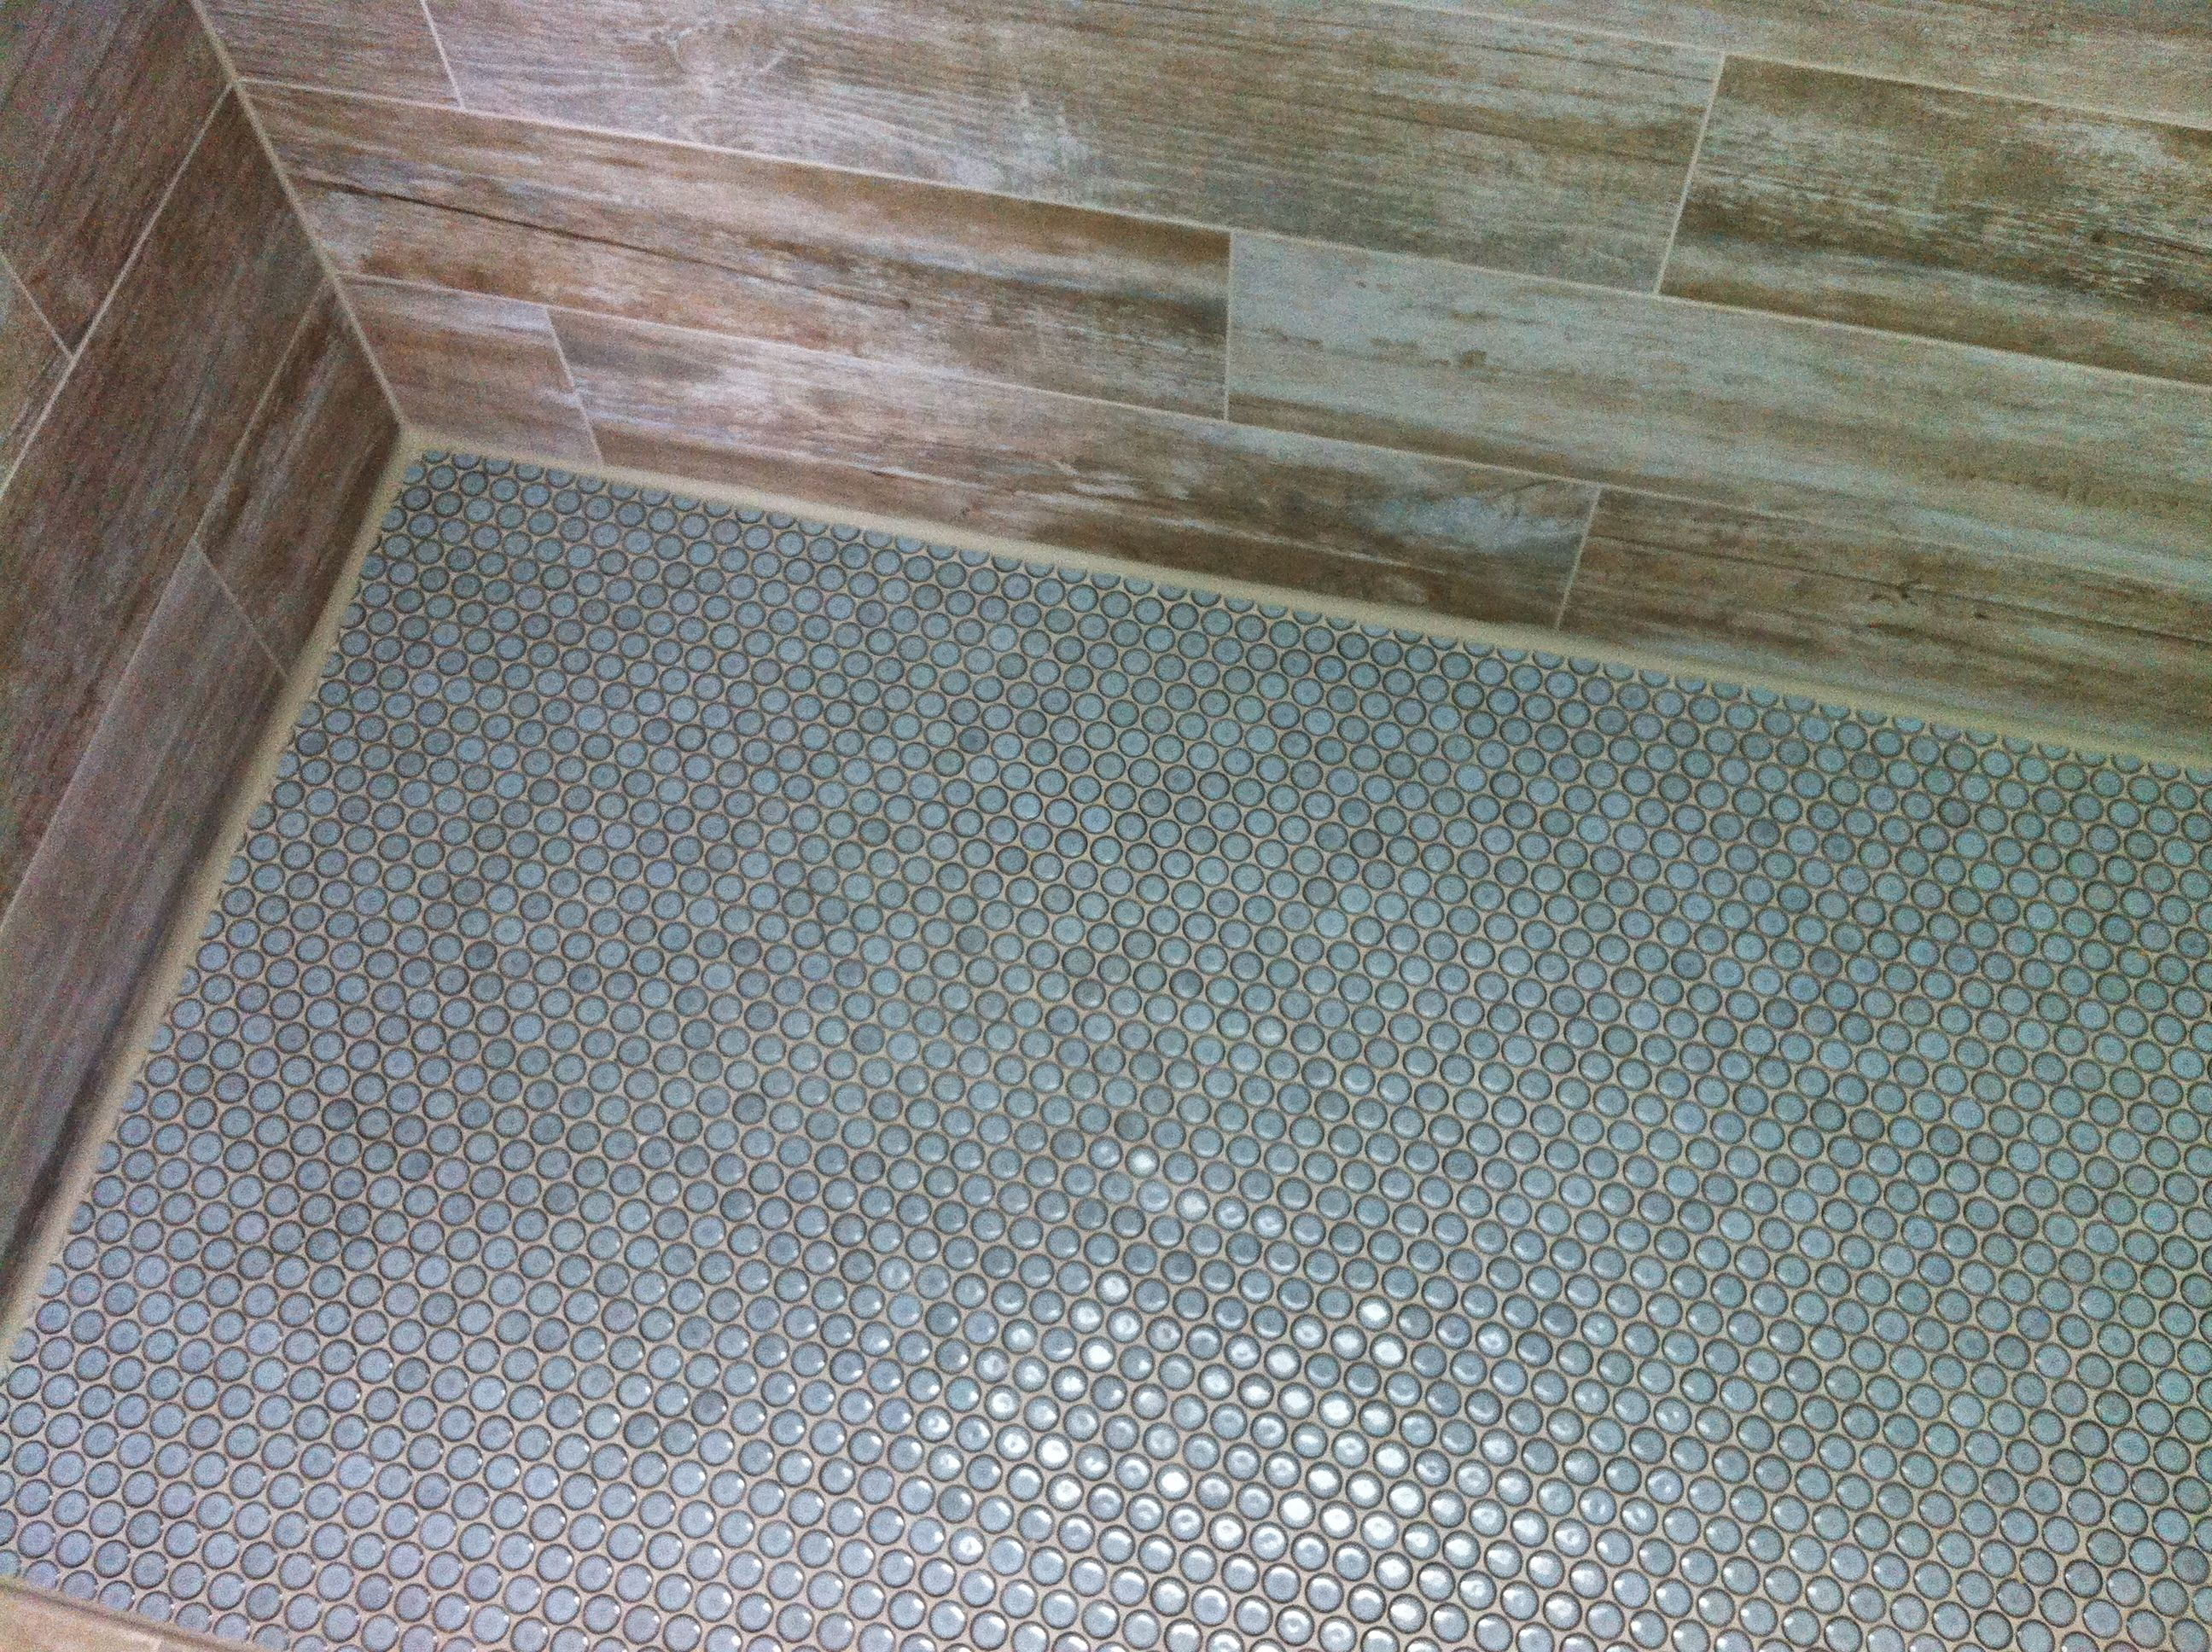 6x24 Porcelain Plank Tile Shower Walls With Penny Rounds On Floor Daniel Island